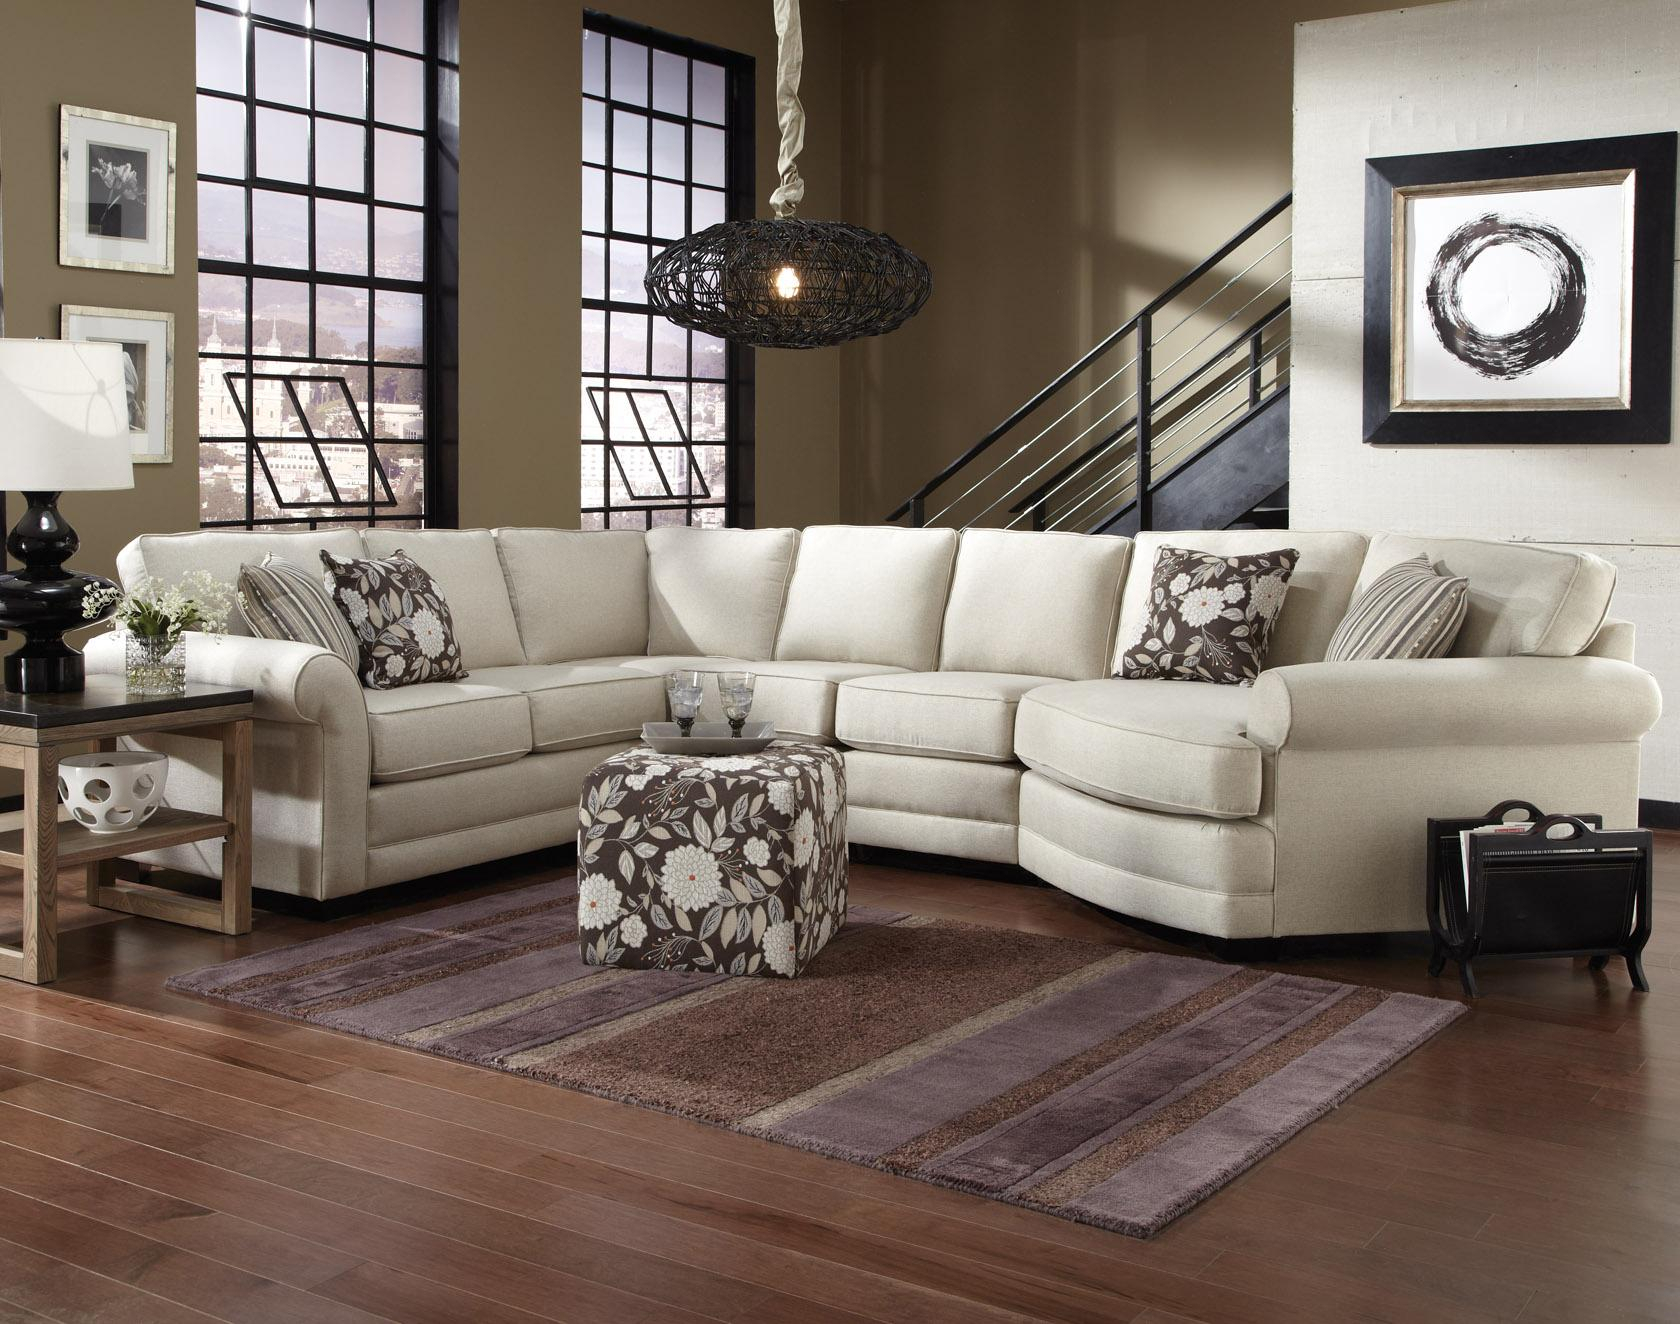 England Brantley 5 Seat Sectional Sofa With Cuddler | Dunk & Bright within Landry Sofa Chairs